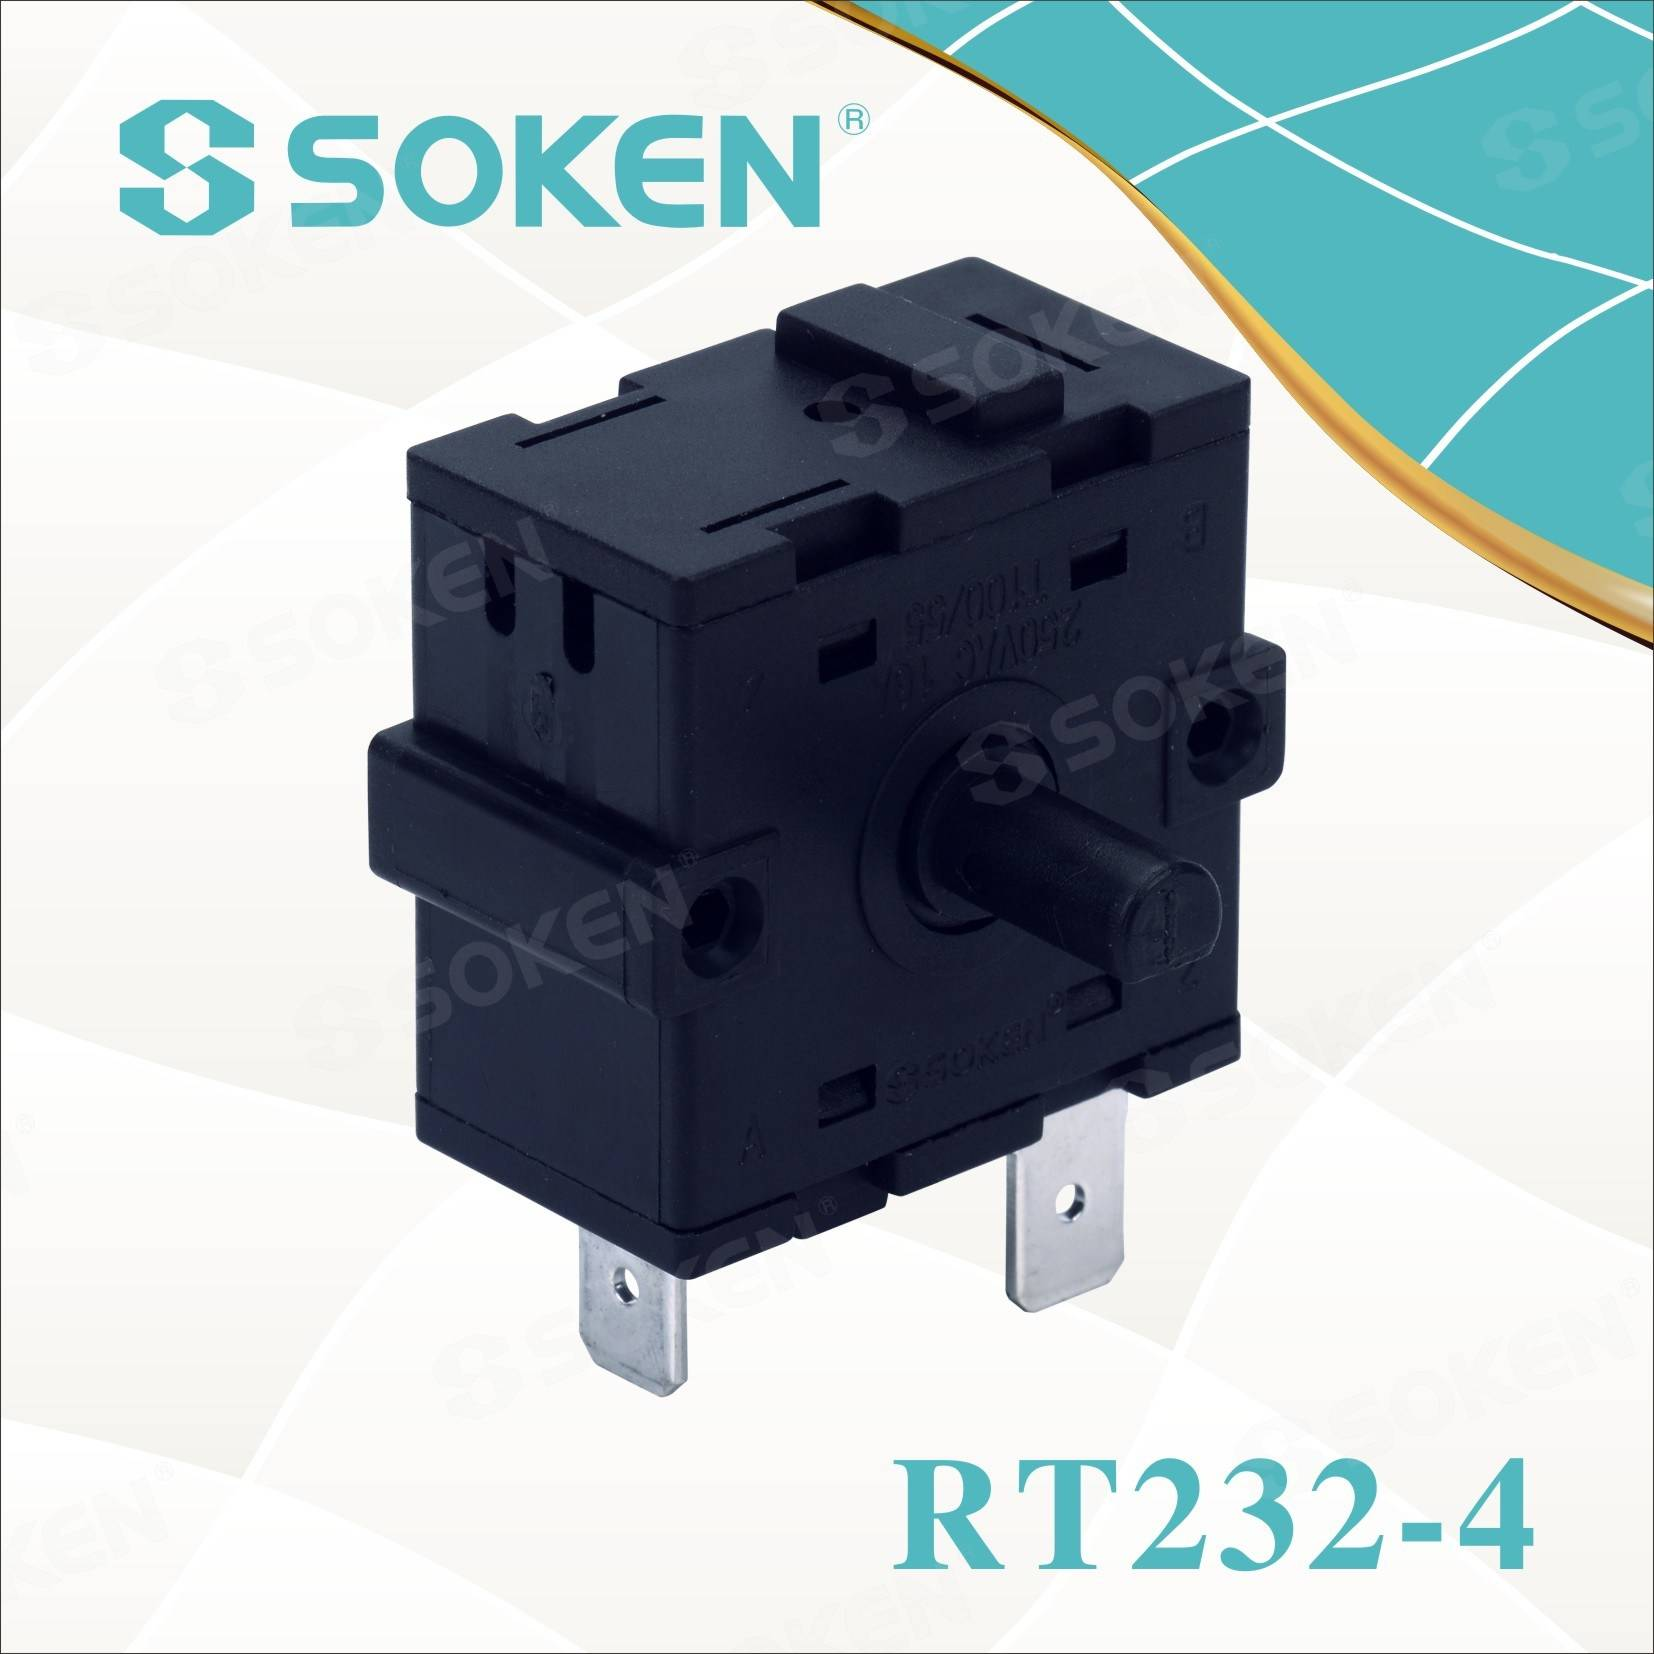 Supply OEM/ODM Automotive Push Button Switches -